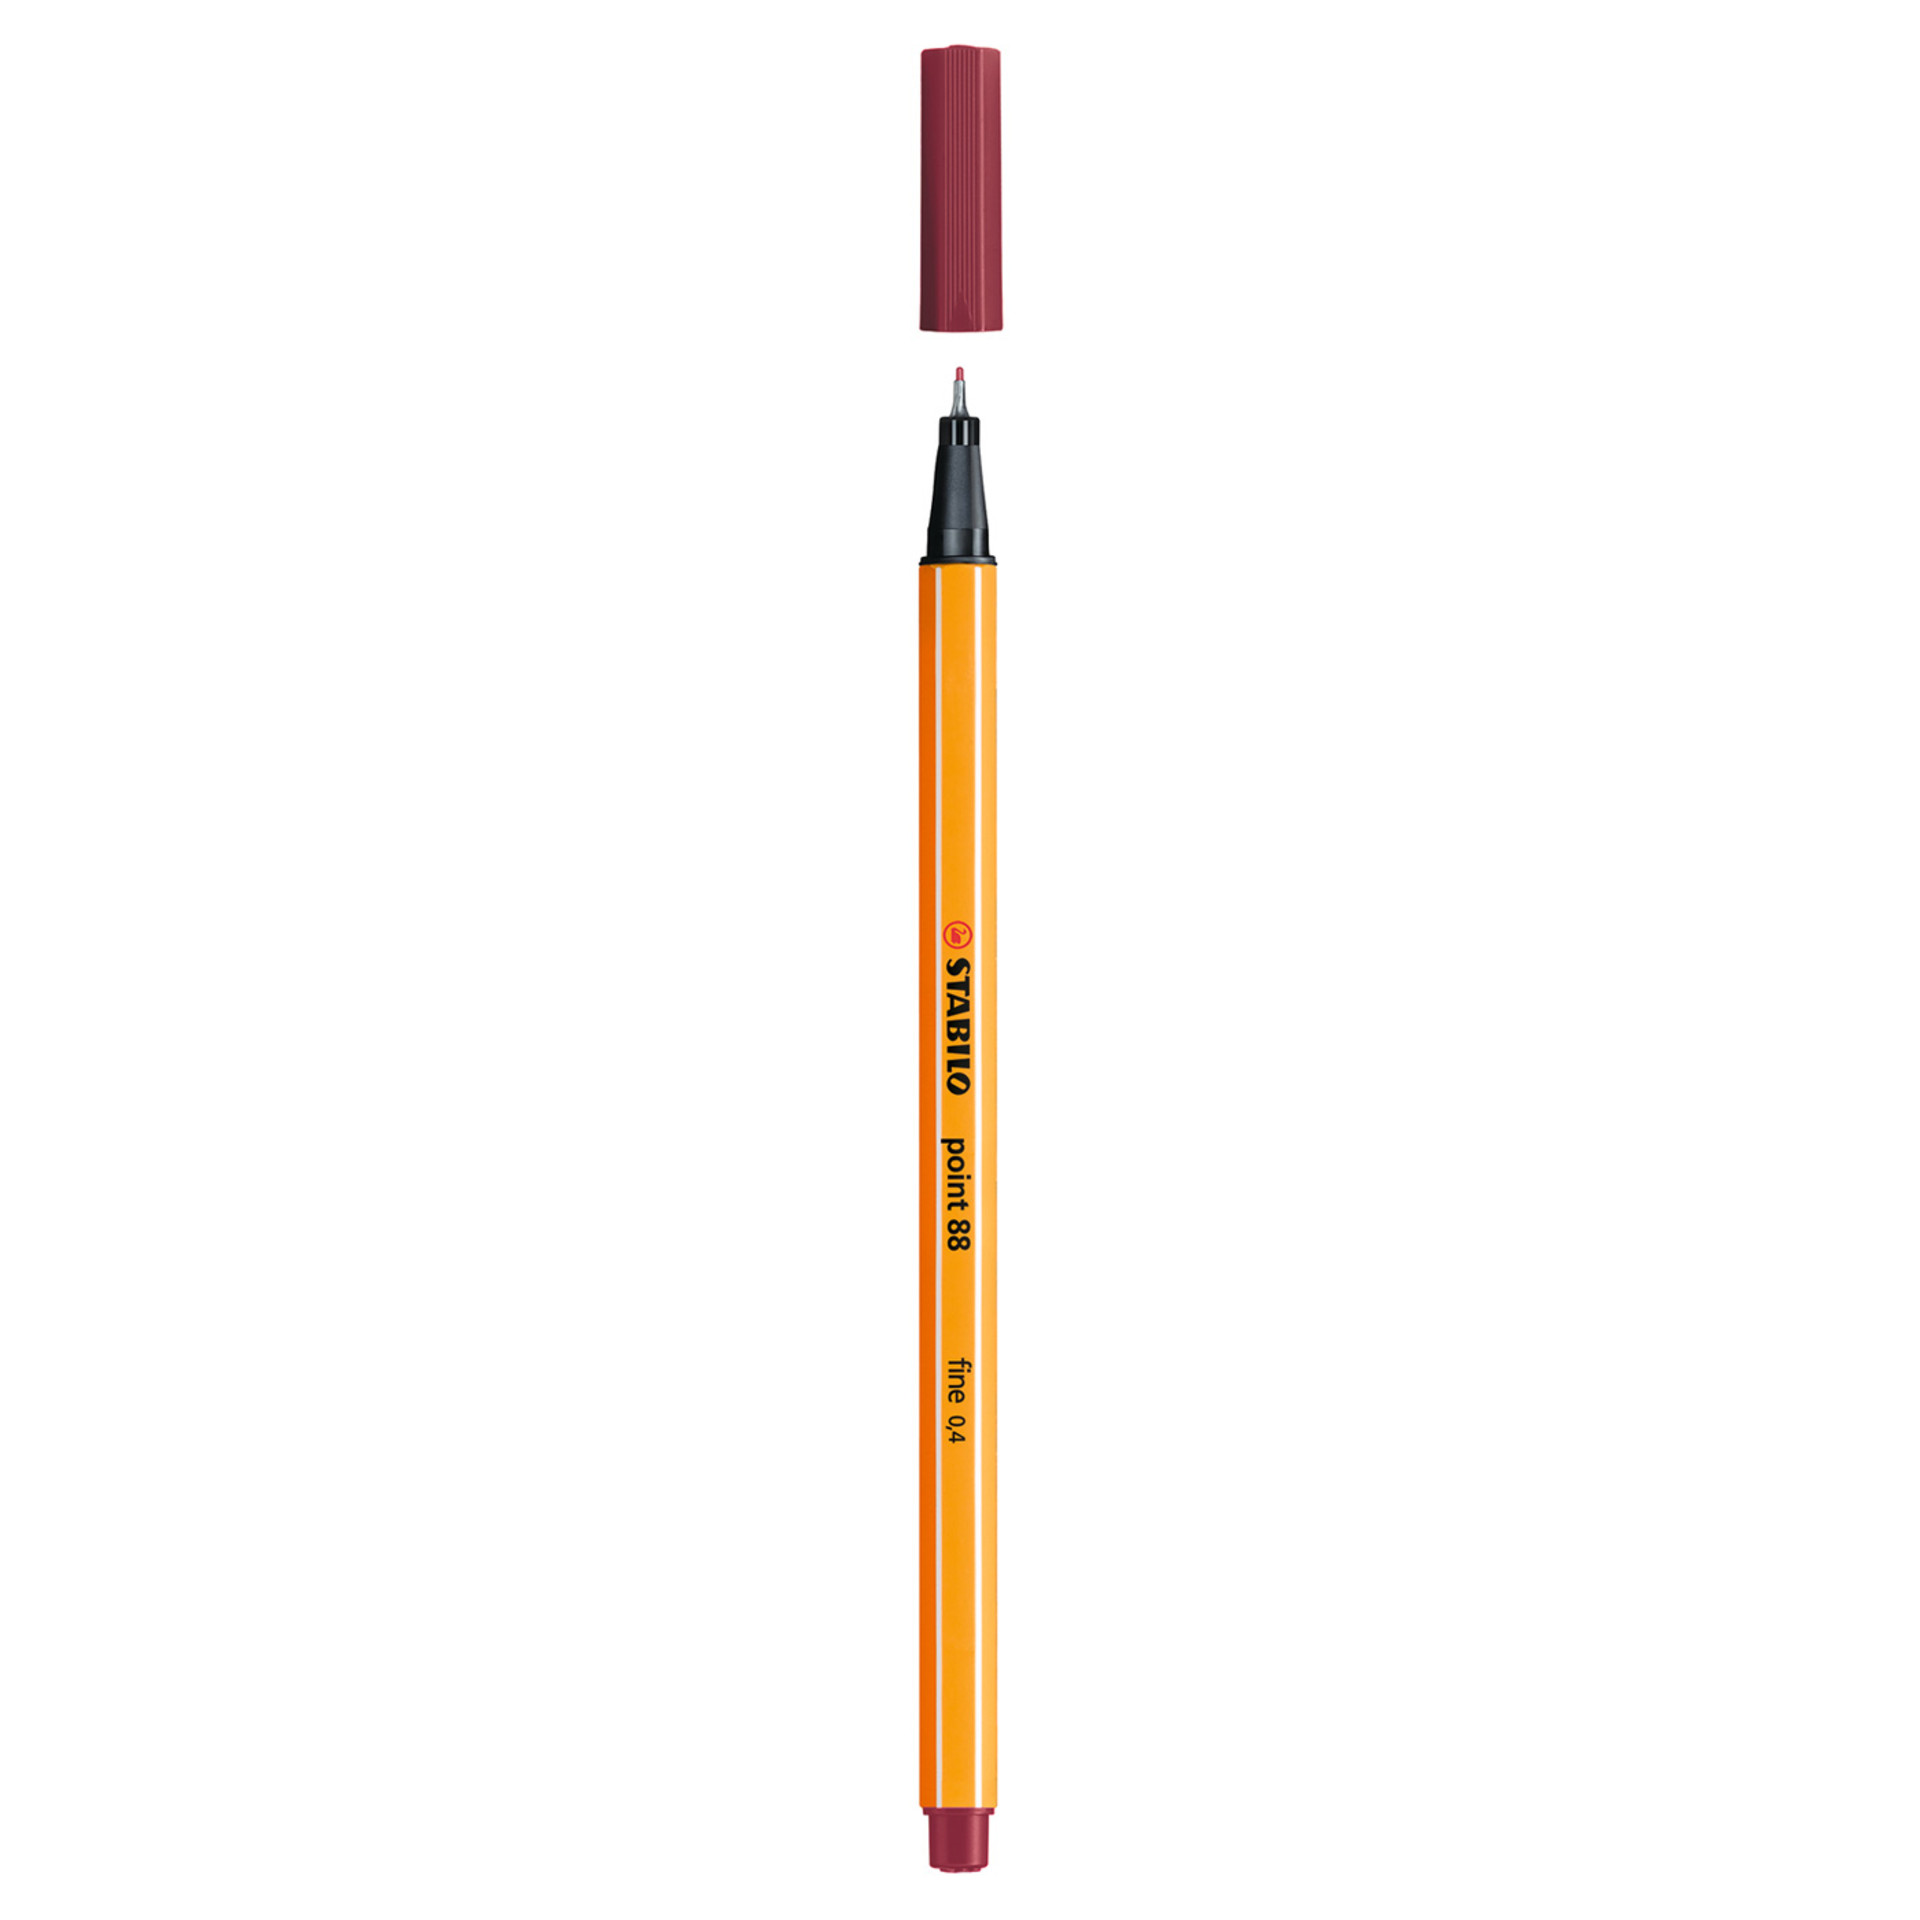 Stabilo Point 88 .4mm Fineliner Pen – Purple